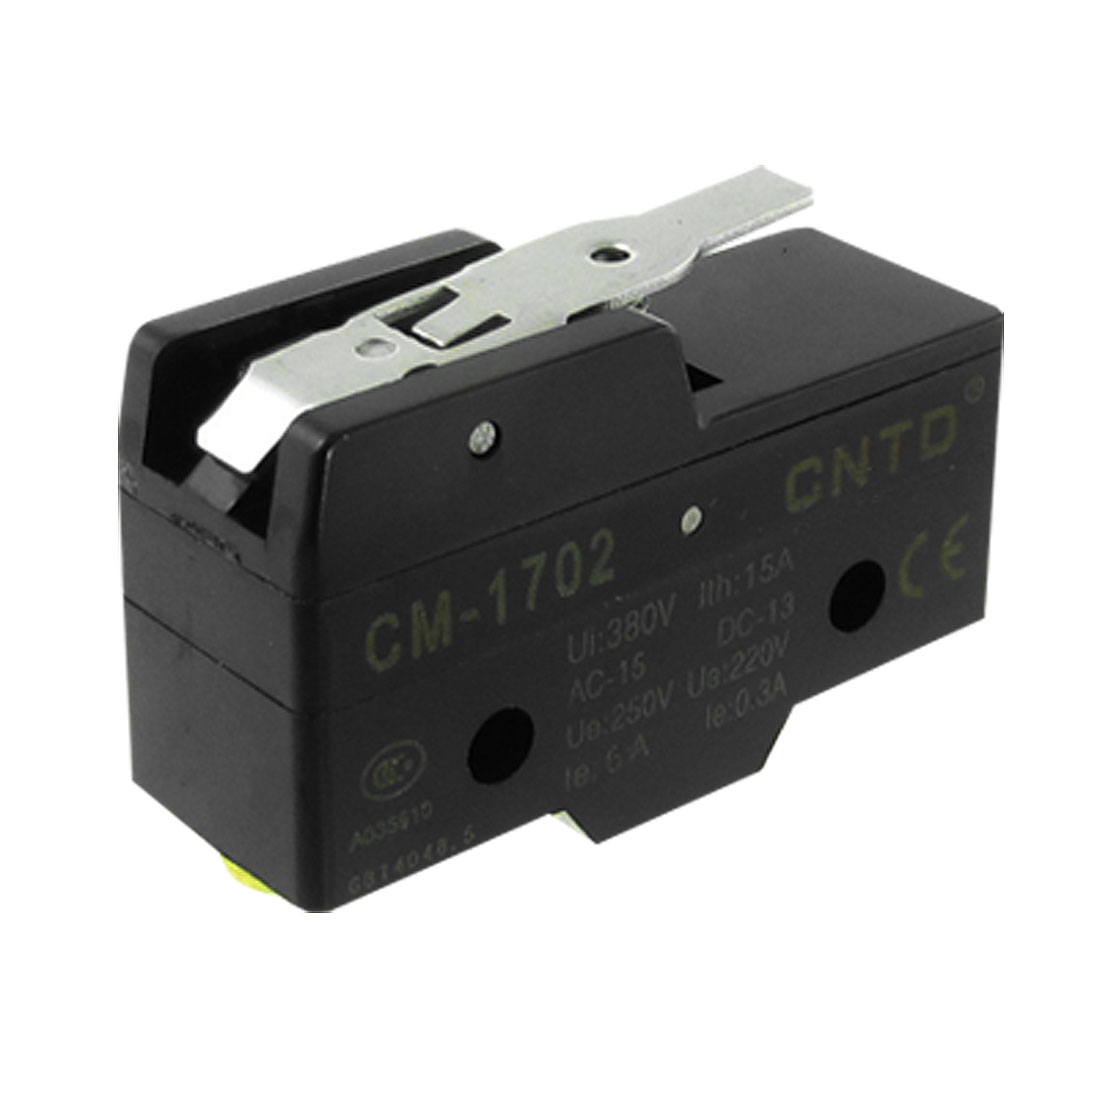 CM-1702 Ui 380V Ith 15A Short Hinge Lever 1 NO 1 NC Micro Switch